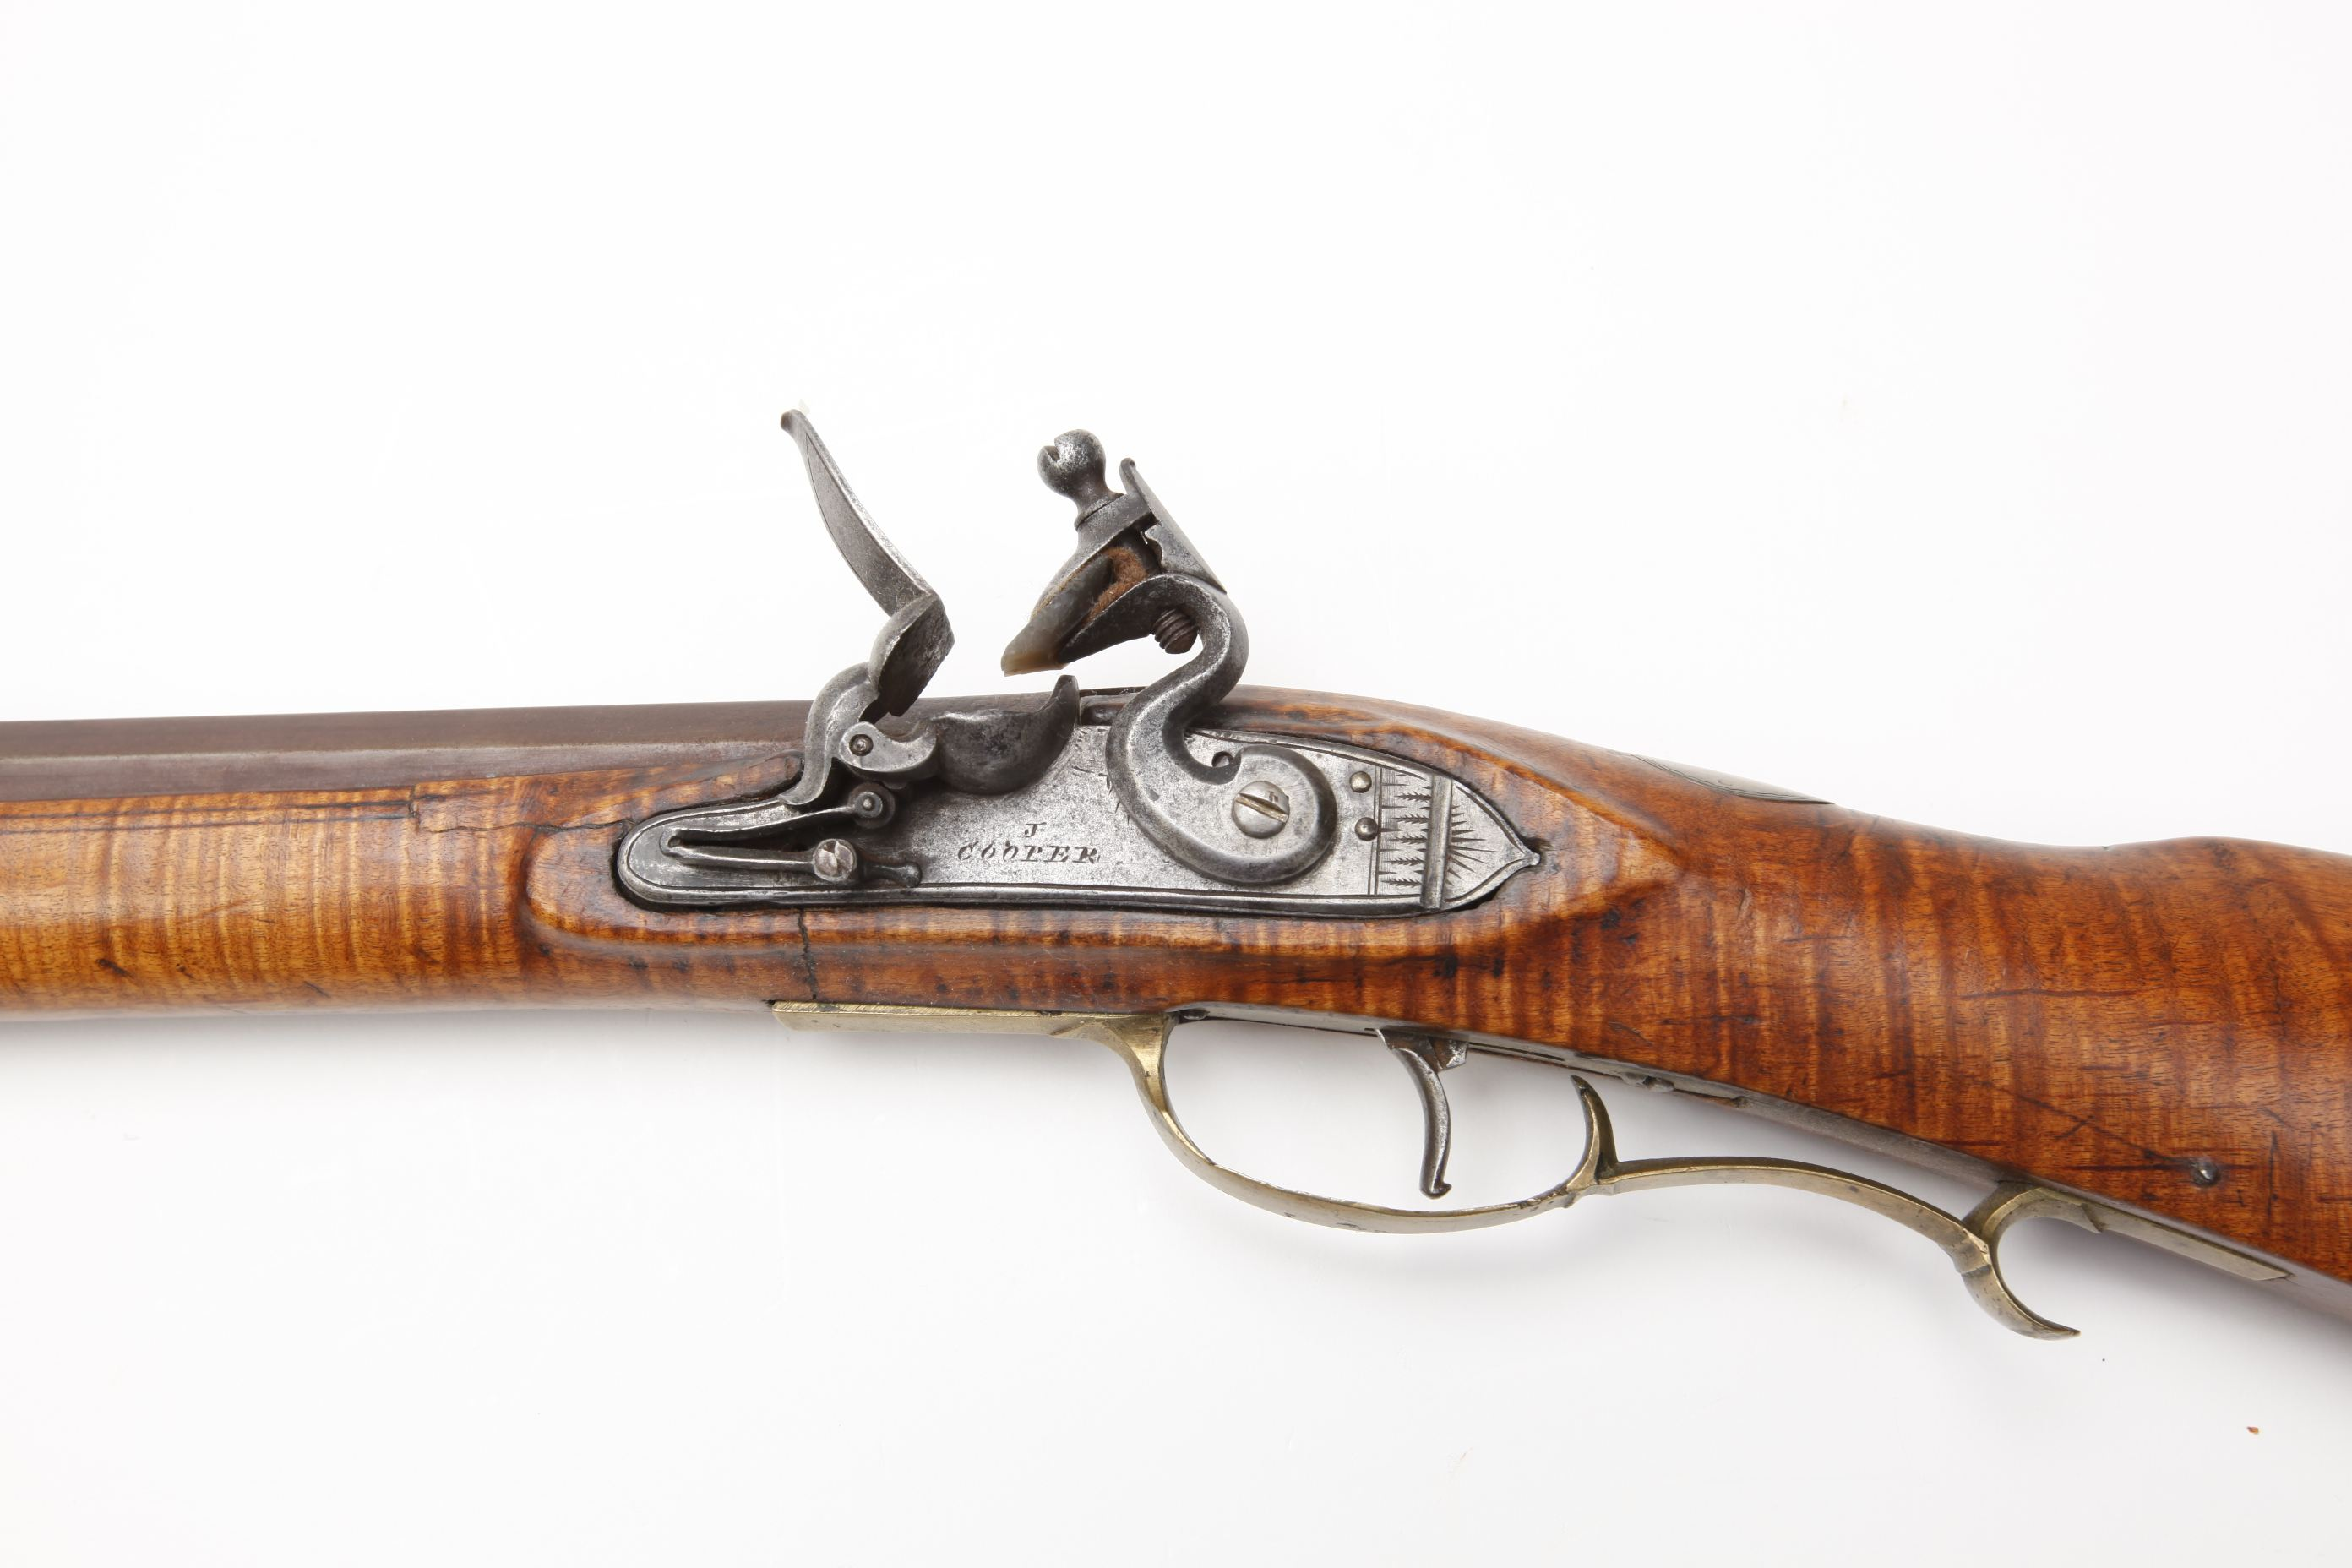 J. Cooper Left handed Pennsylvania Kentucky Flintlock Rifle